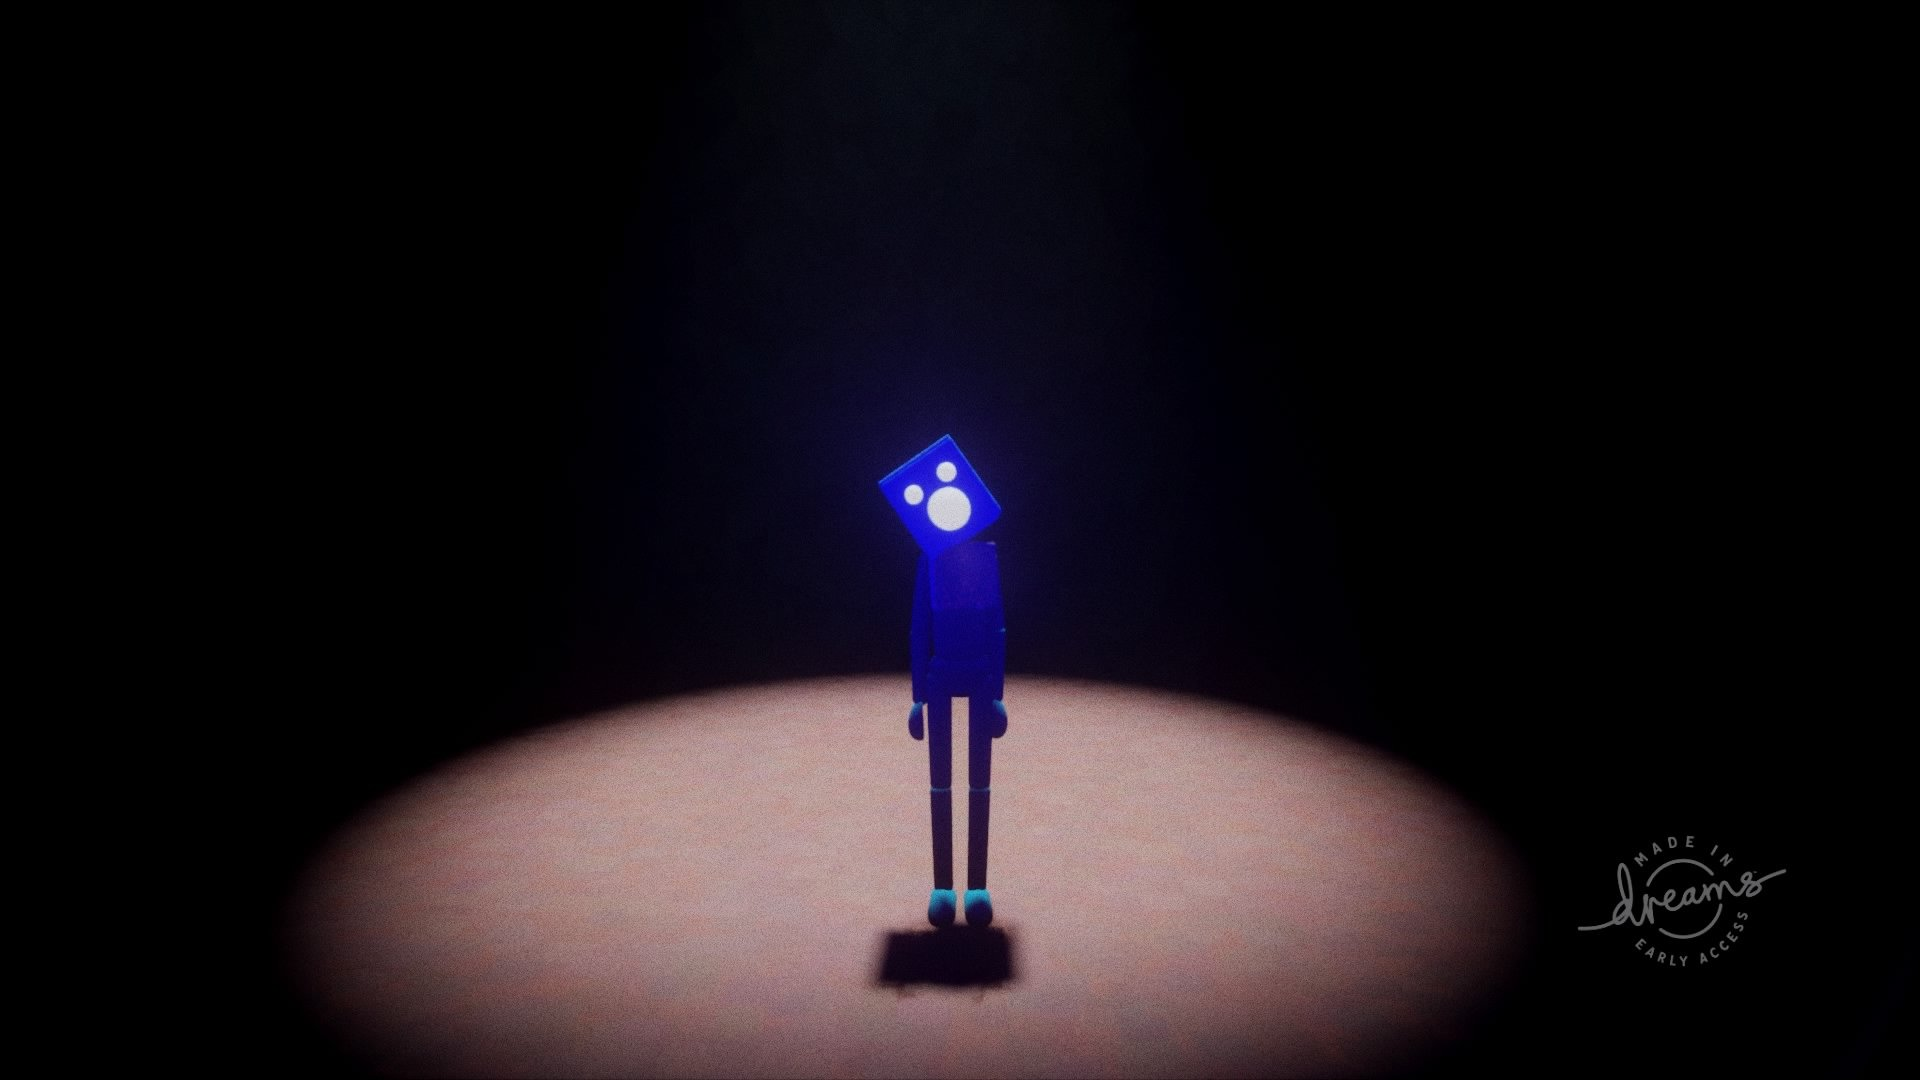 Blue character standing in spotlight from Dreams